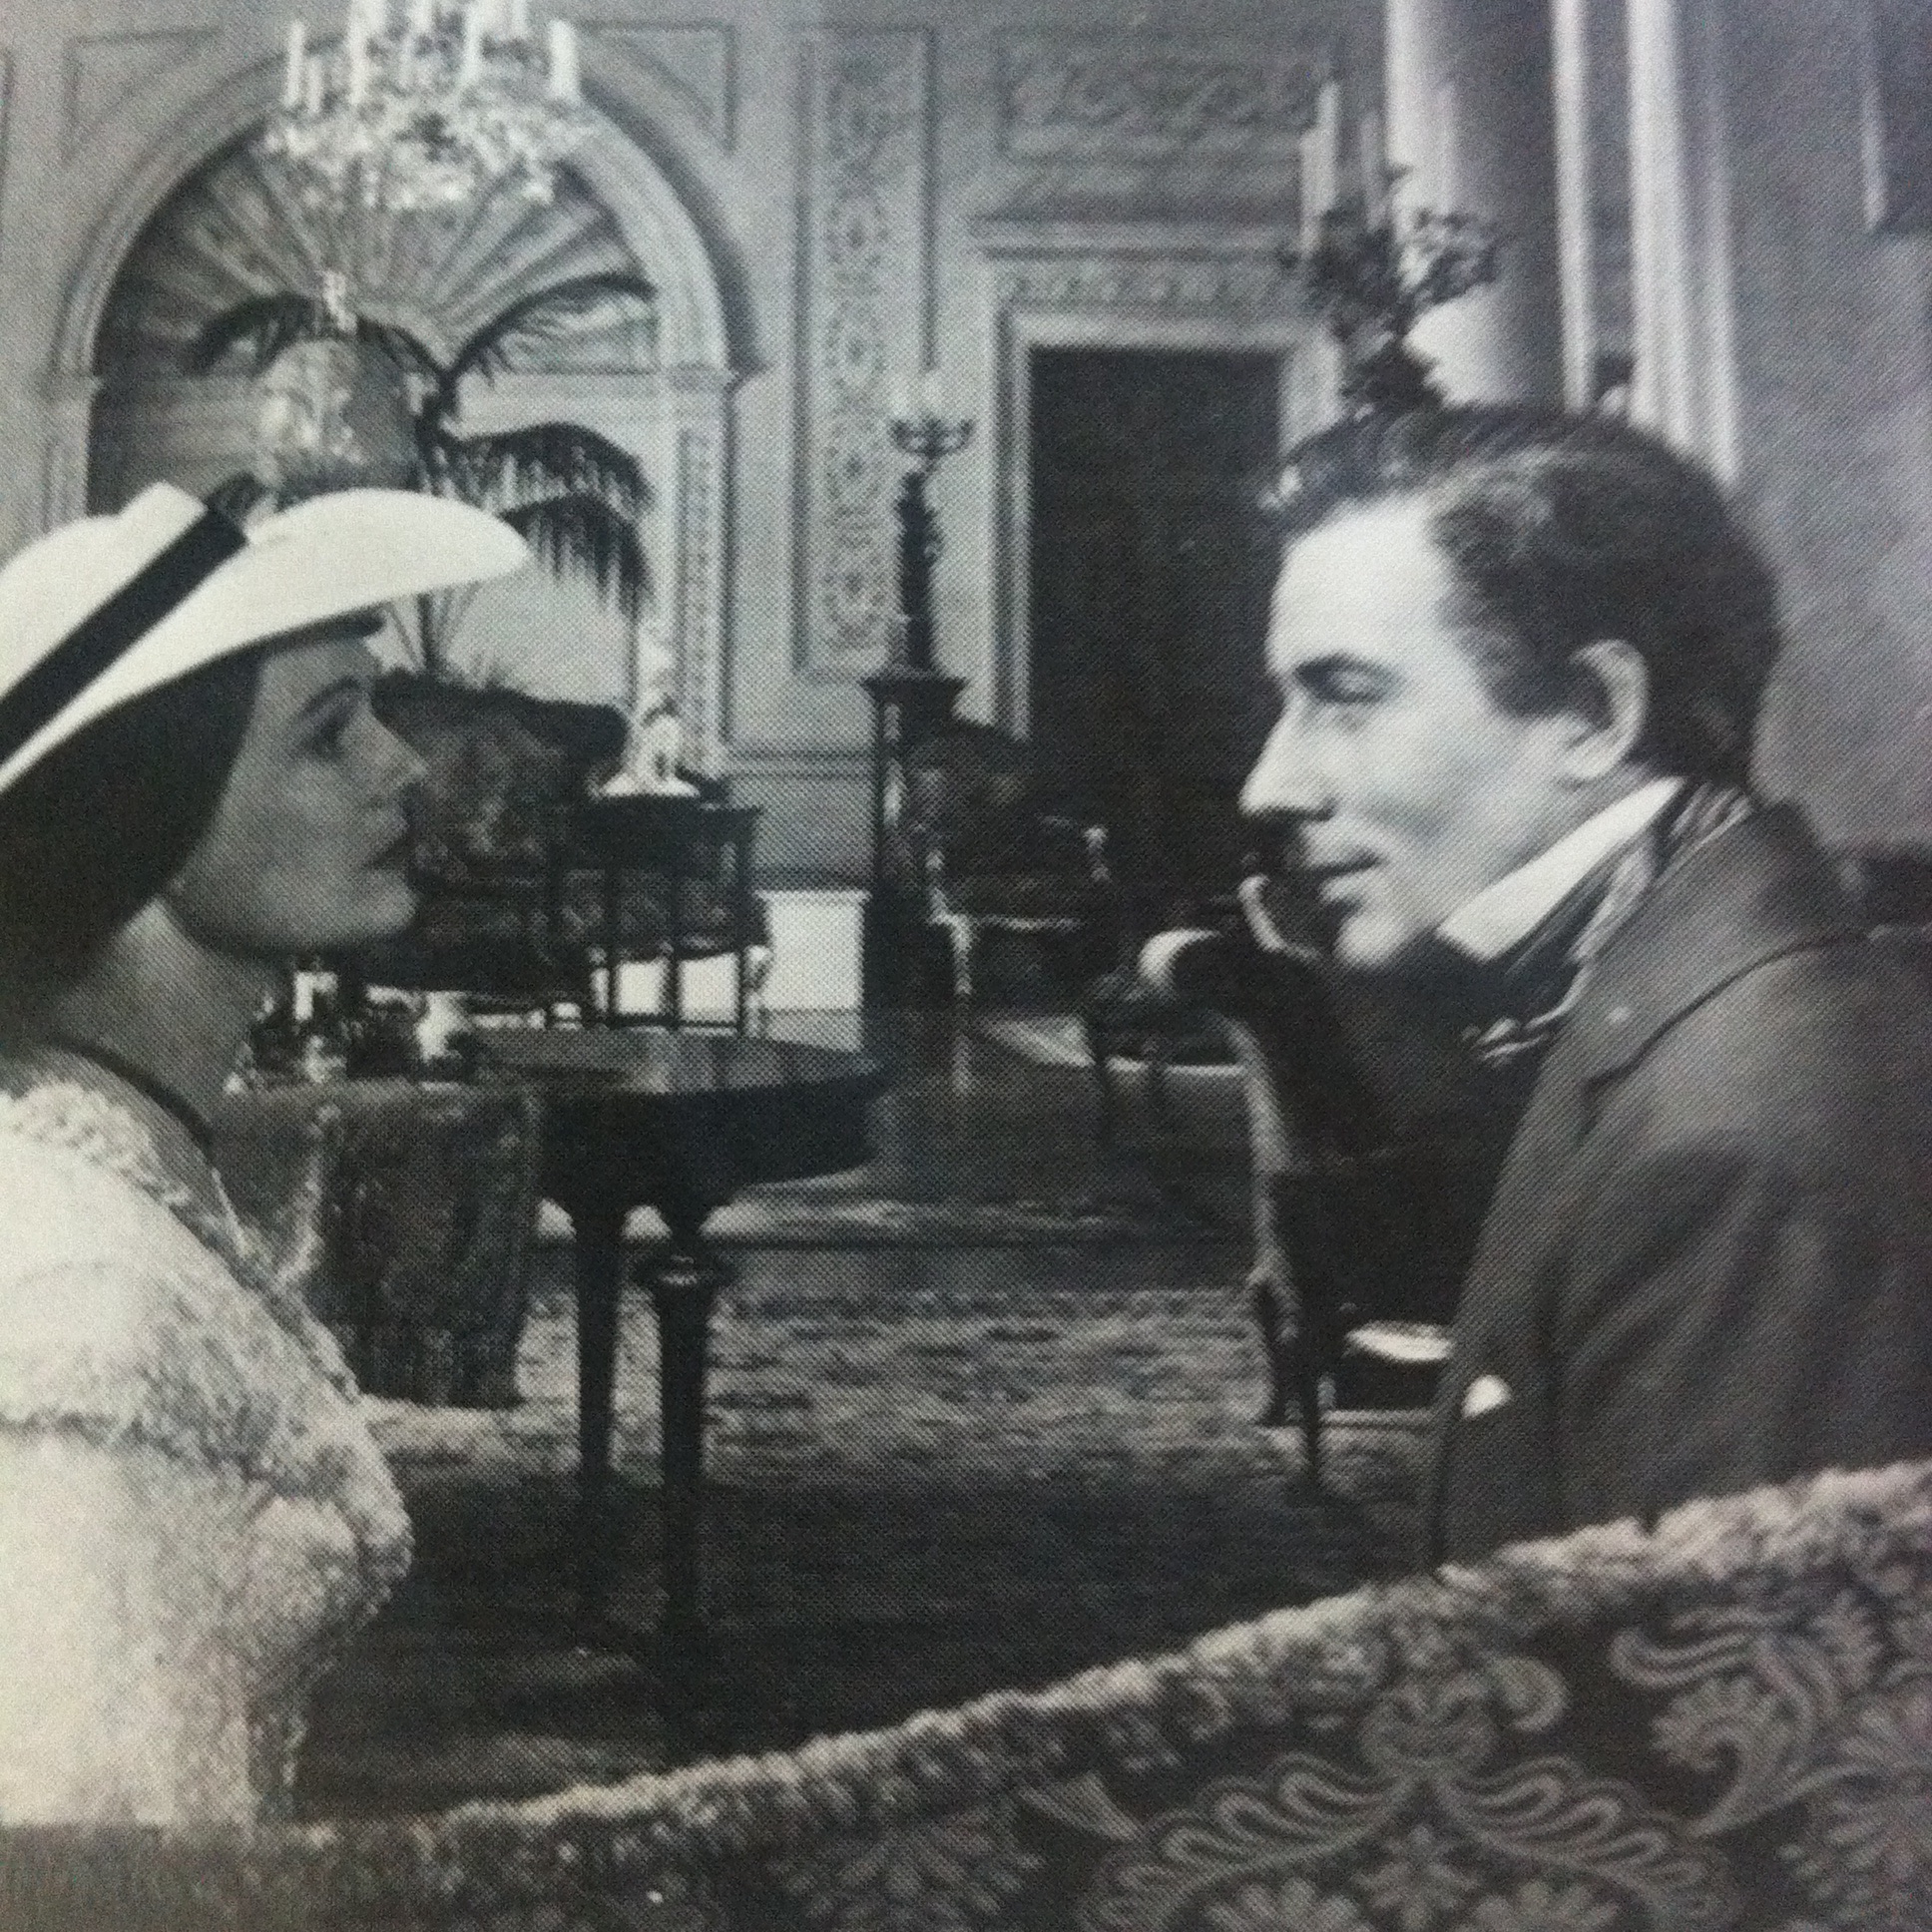 Anna Neagle and Michael Wilding in The Lady with a Lamp (1951)